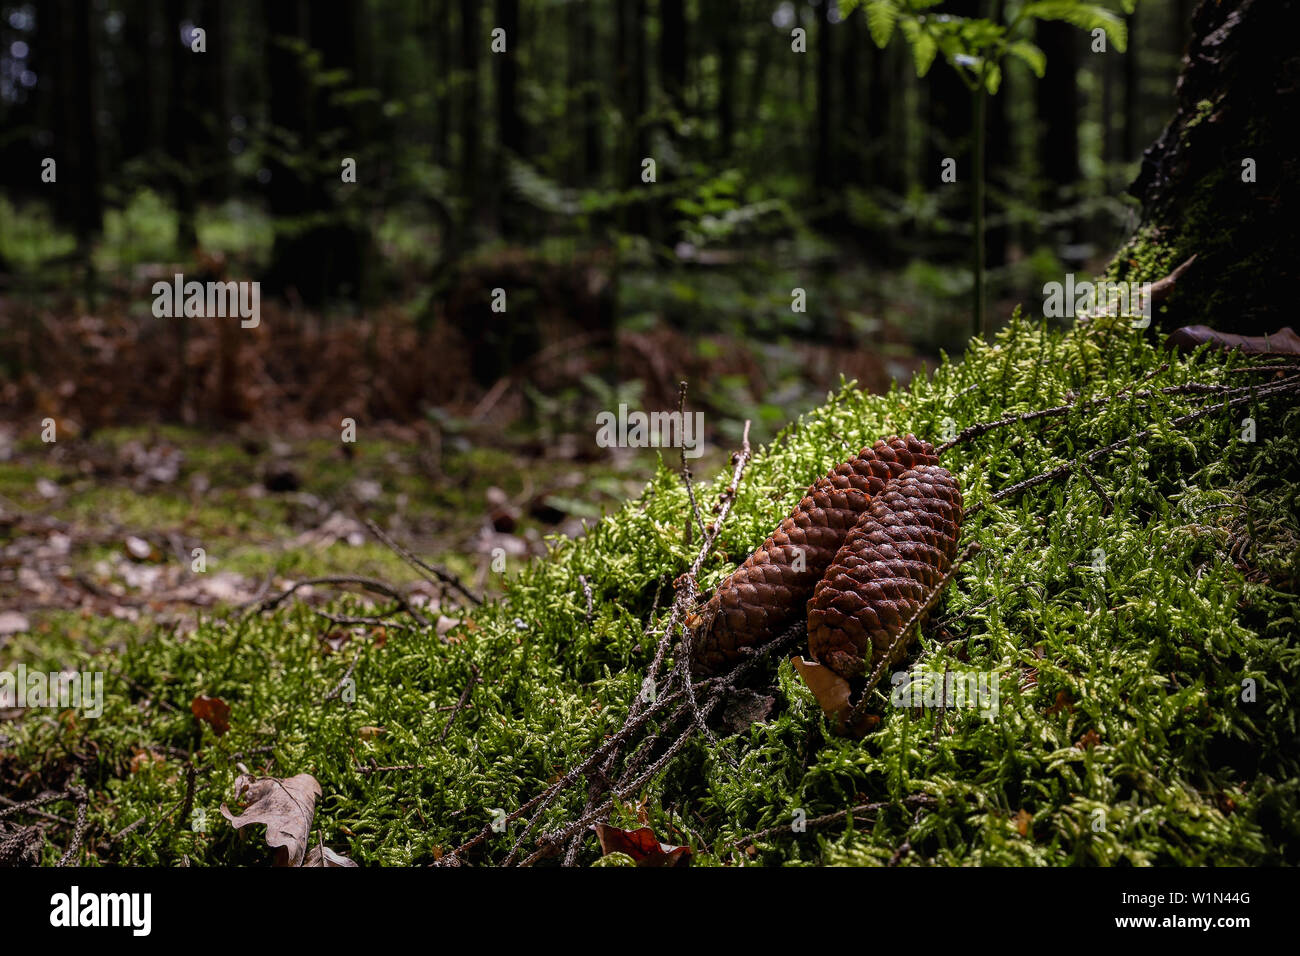 Pine cones fallen on forest ground - Stock Image